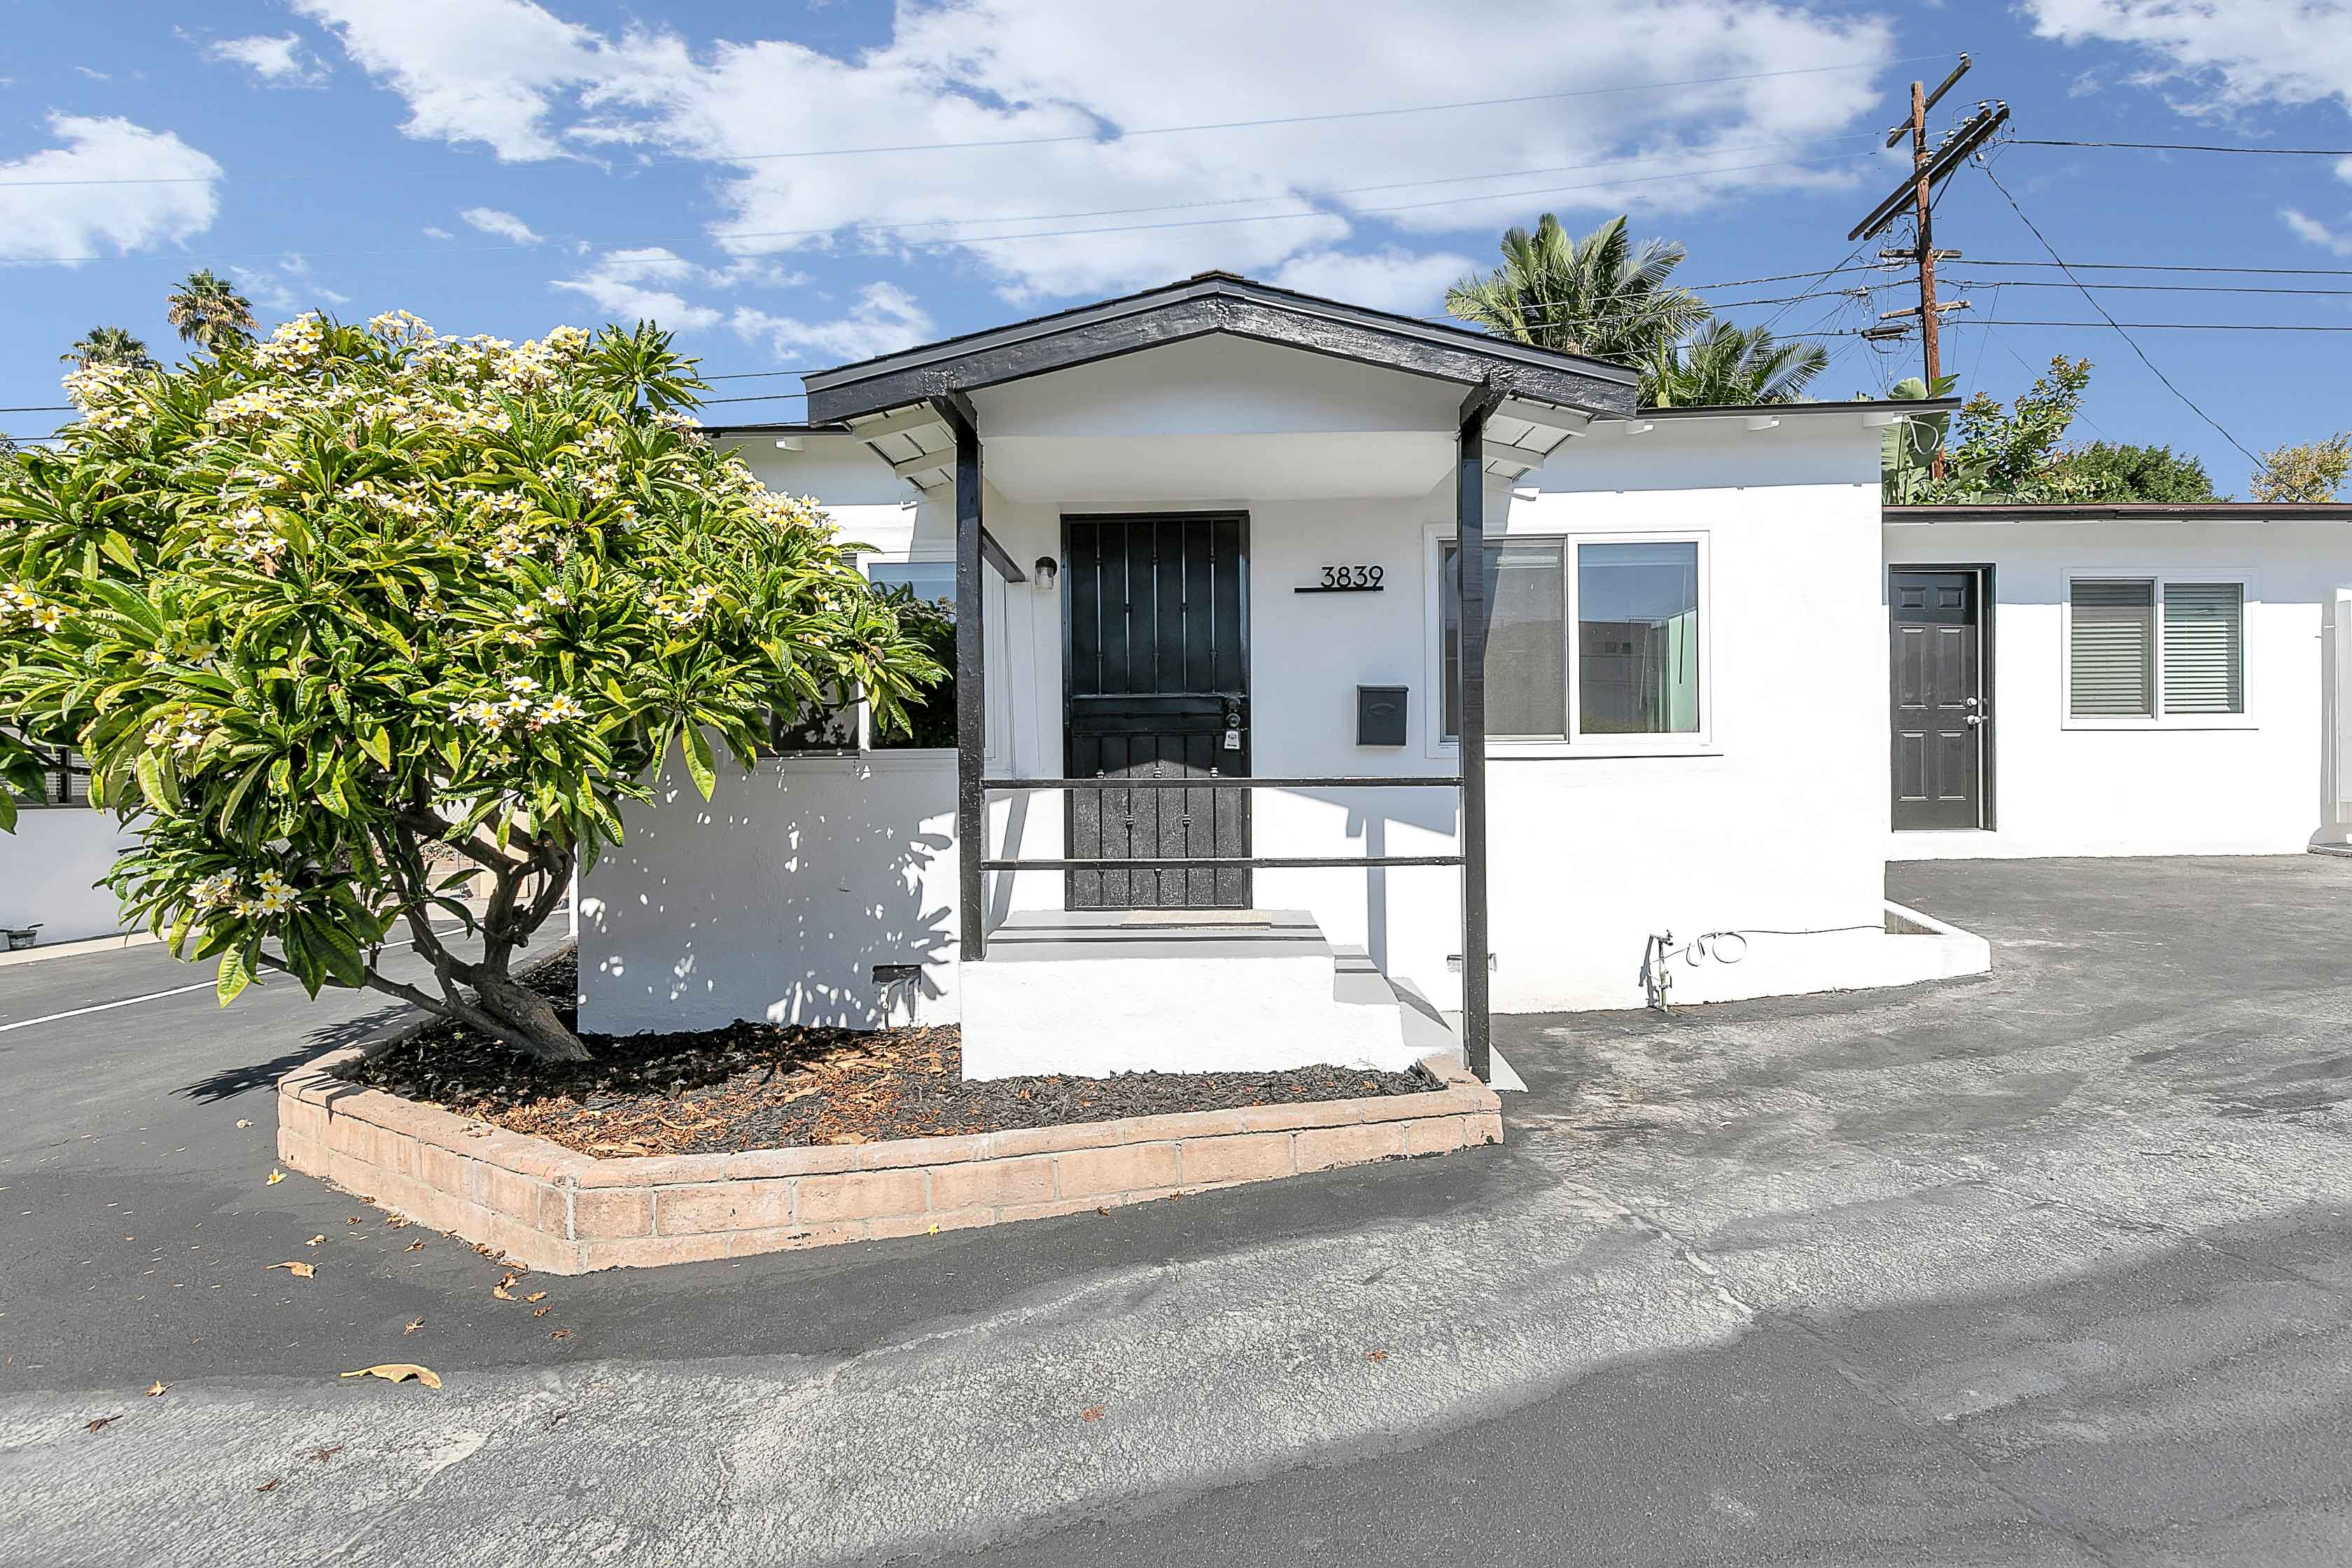 Spacious & Renovated Single Family Home | Intimate 4-Plex Property | Private Side Patio + Shared Patio W/ Fireplace & Deck | Amazing Location!